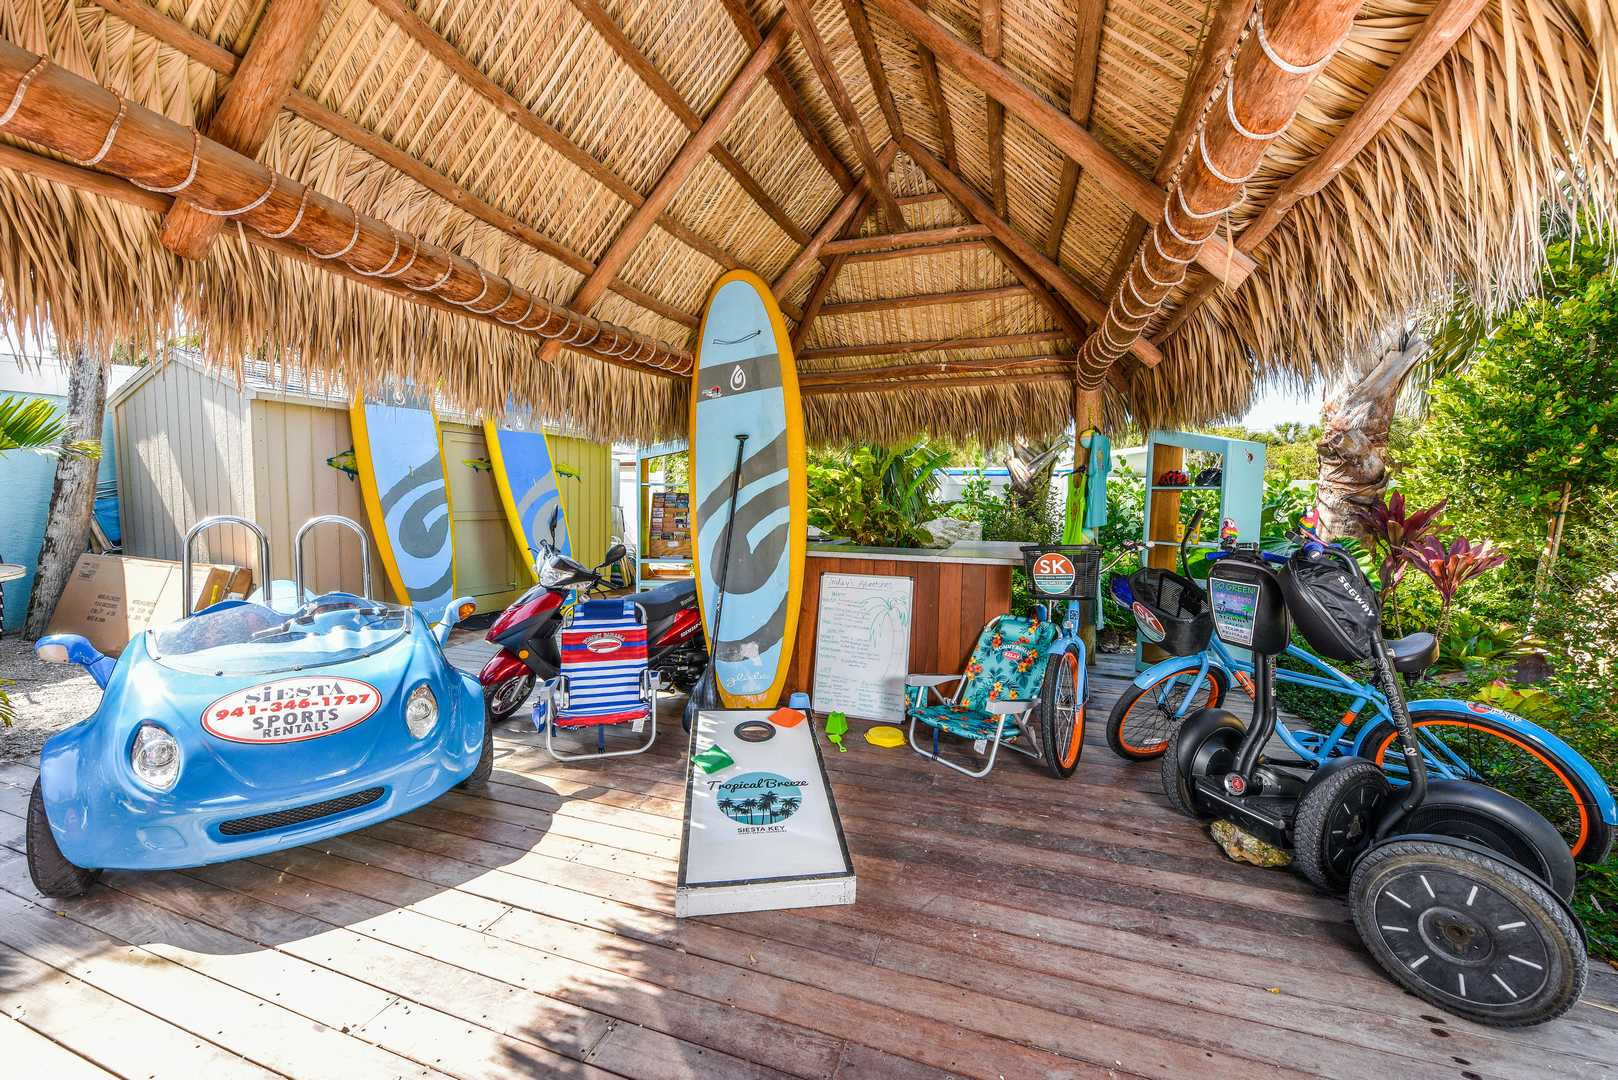 Adventure Tiki - Rentals, Tours, Equipment at your service